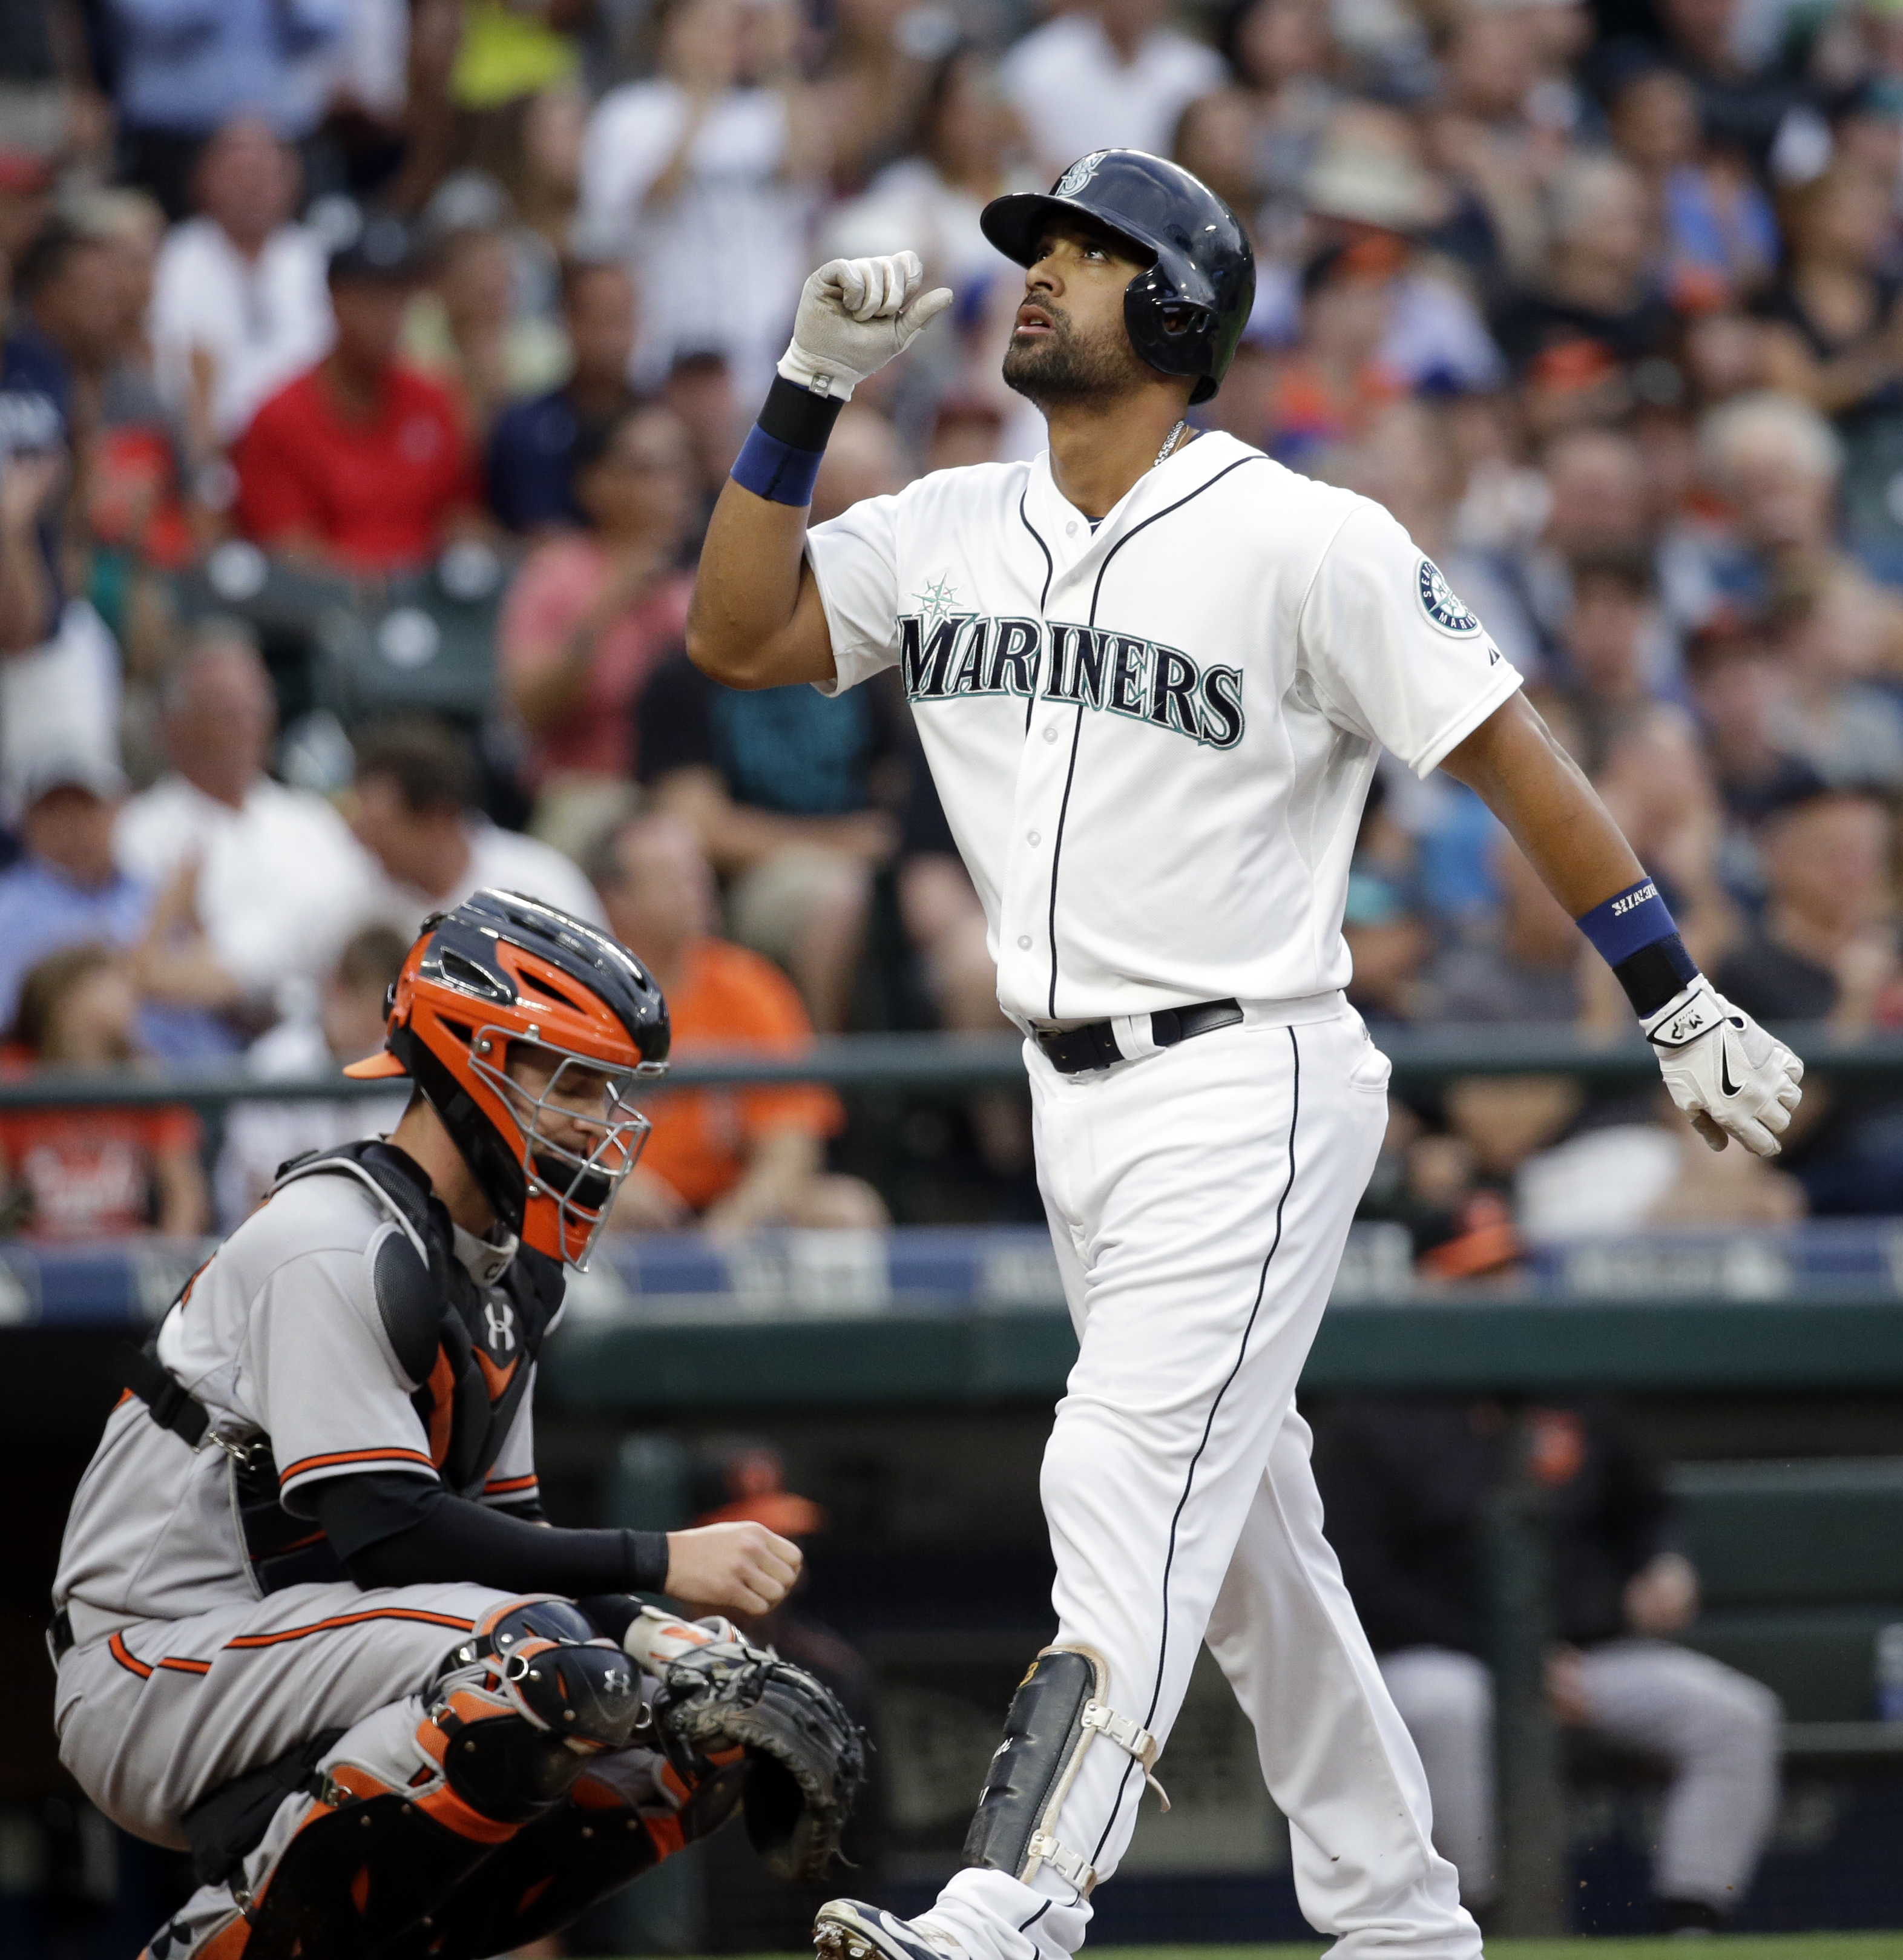 Seattle Mariners' Franklin Gutierrez, right, points skyward as he crosses home on his home run as Baltimore Orioles catcher Caleb Joseph looks away in the second inning of a baseball game Monday, Aug. 10, 2015, in Seattle. (AP Photo/Elaine Thompson)